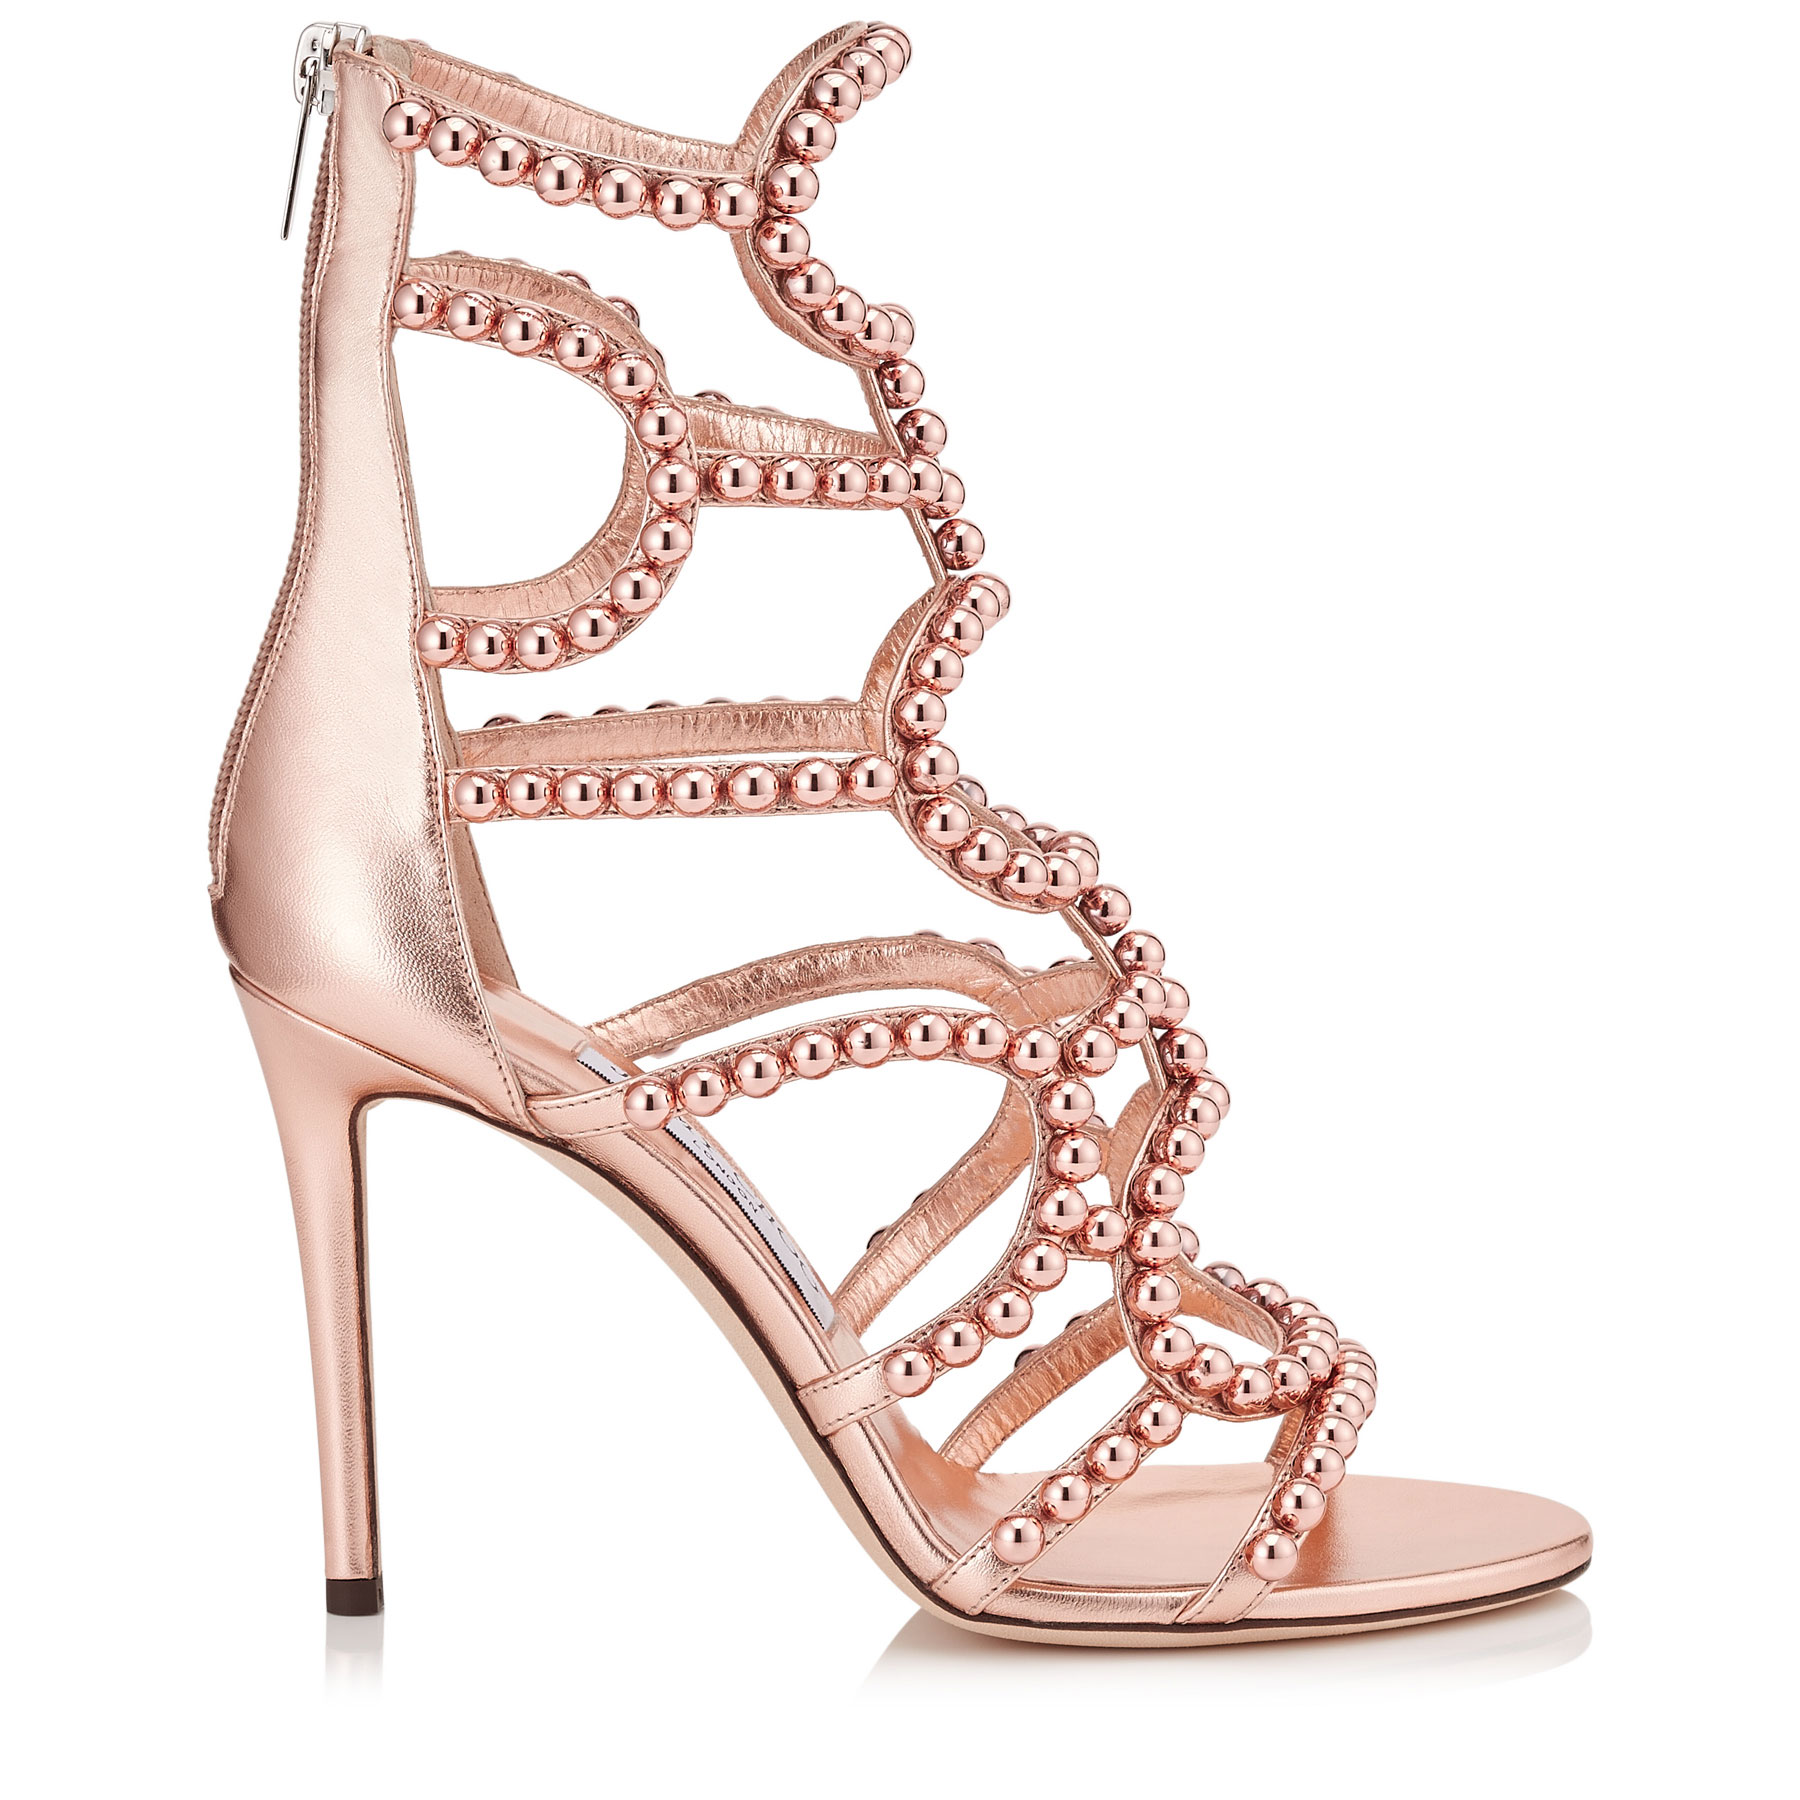 LEJA 100 Tea Rose and Copper Metallic Nappa with Beads Sandals by Jimmy Choo